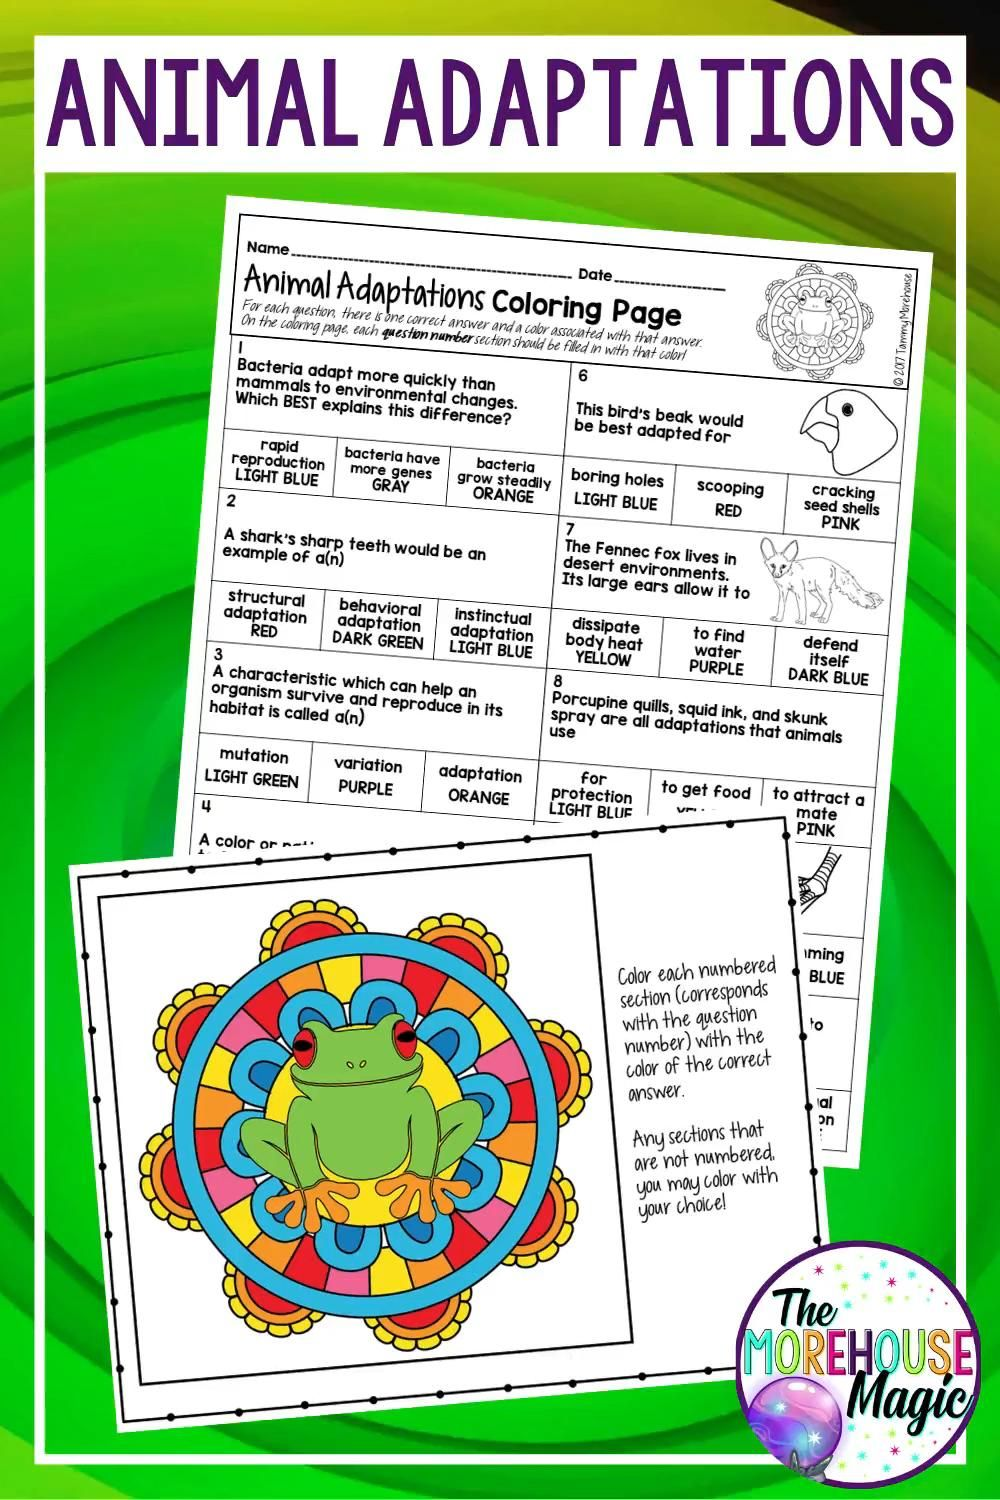 Animal Adaptations Science Color By Number Activity [Video]  Animal  adaptations, Life science middle school, Adaptations science